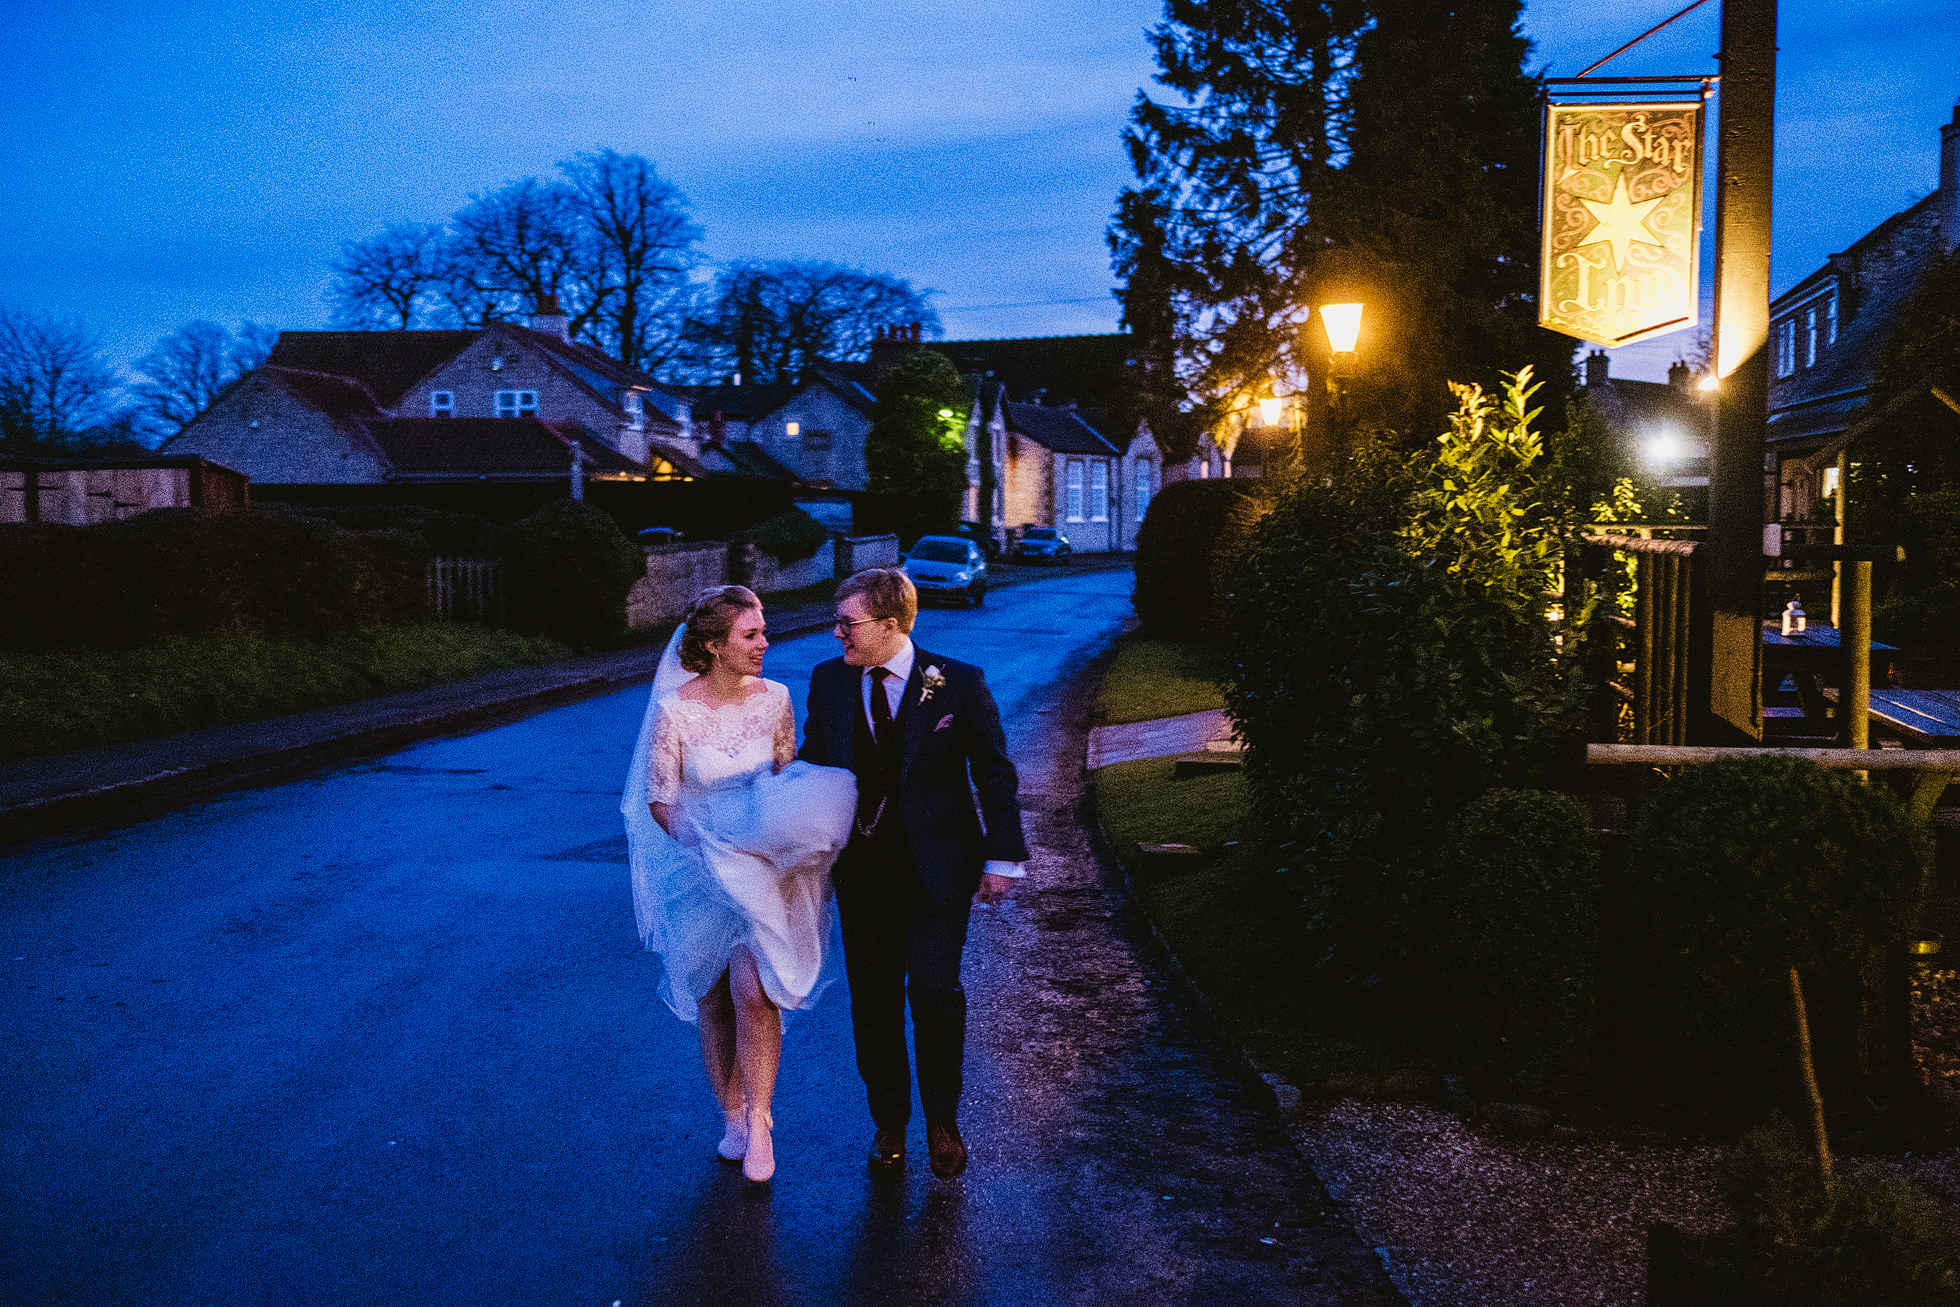 The Star Inn Wedding Photographer